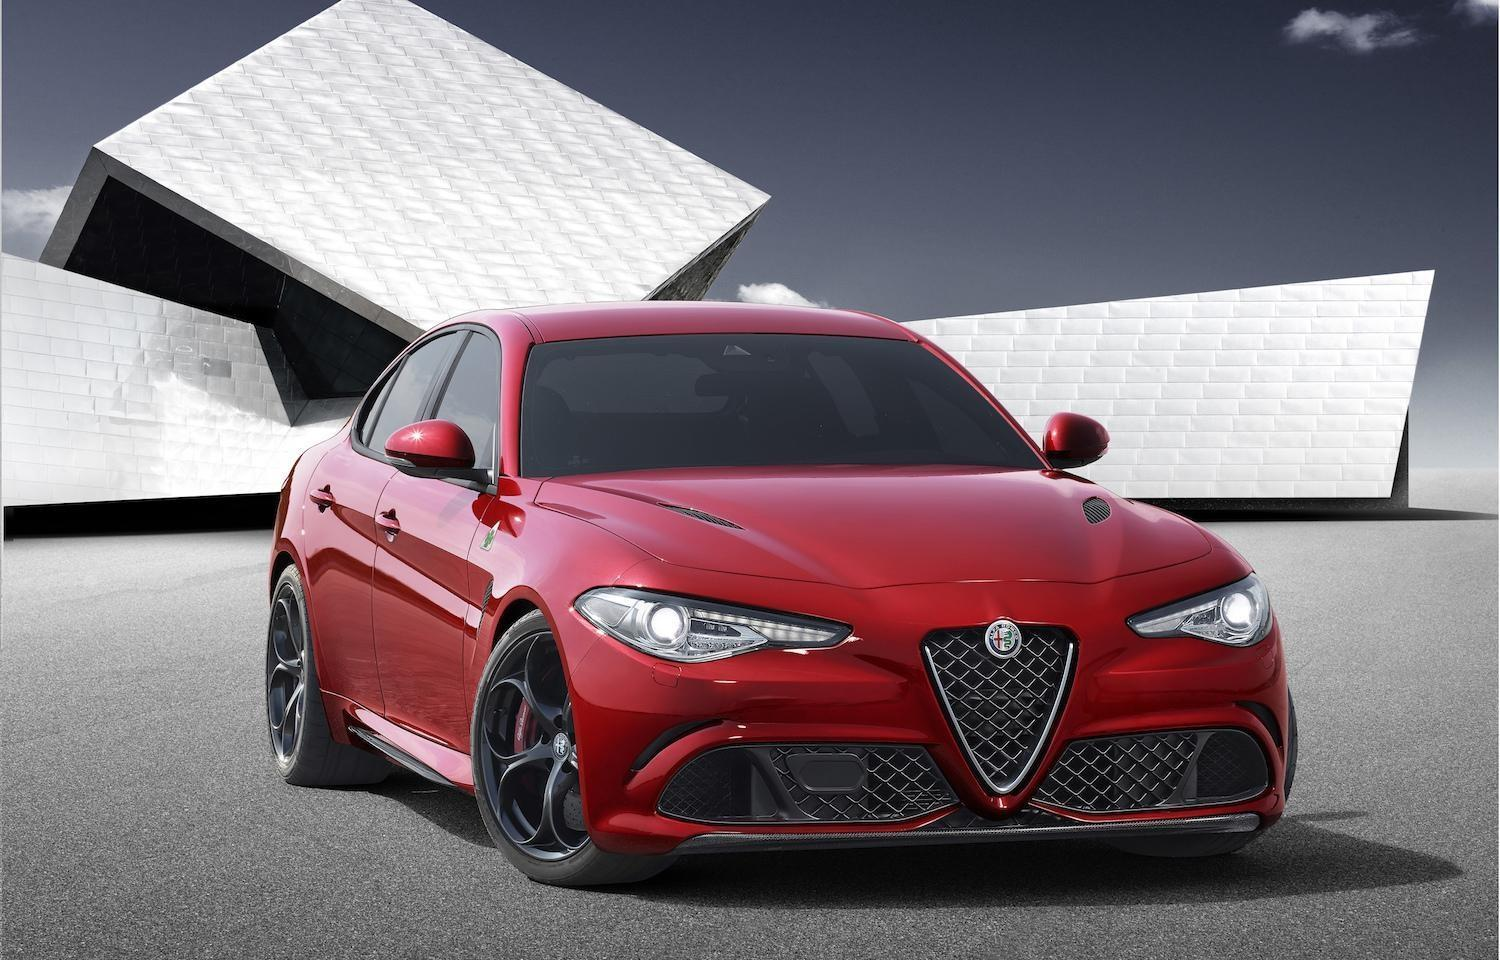 Alfa Romeo denies Giulia delay is due to crash test issues